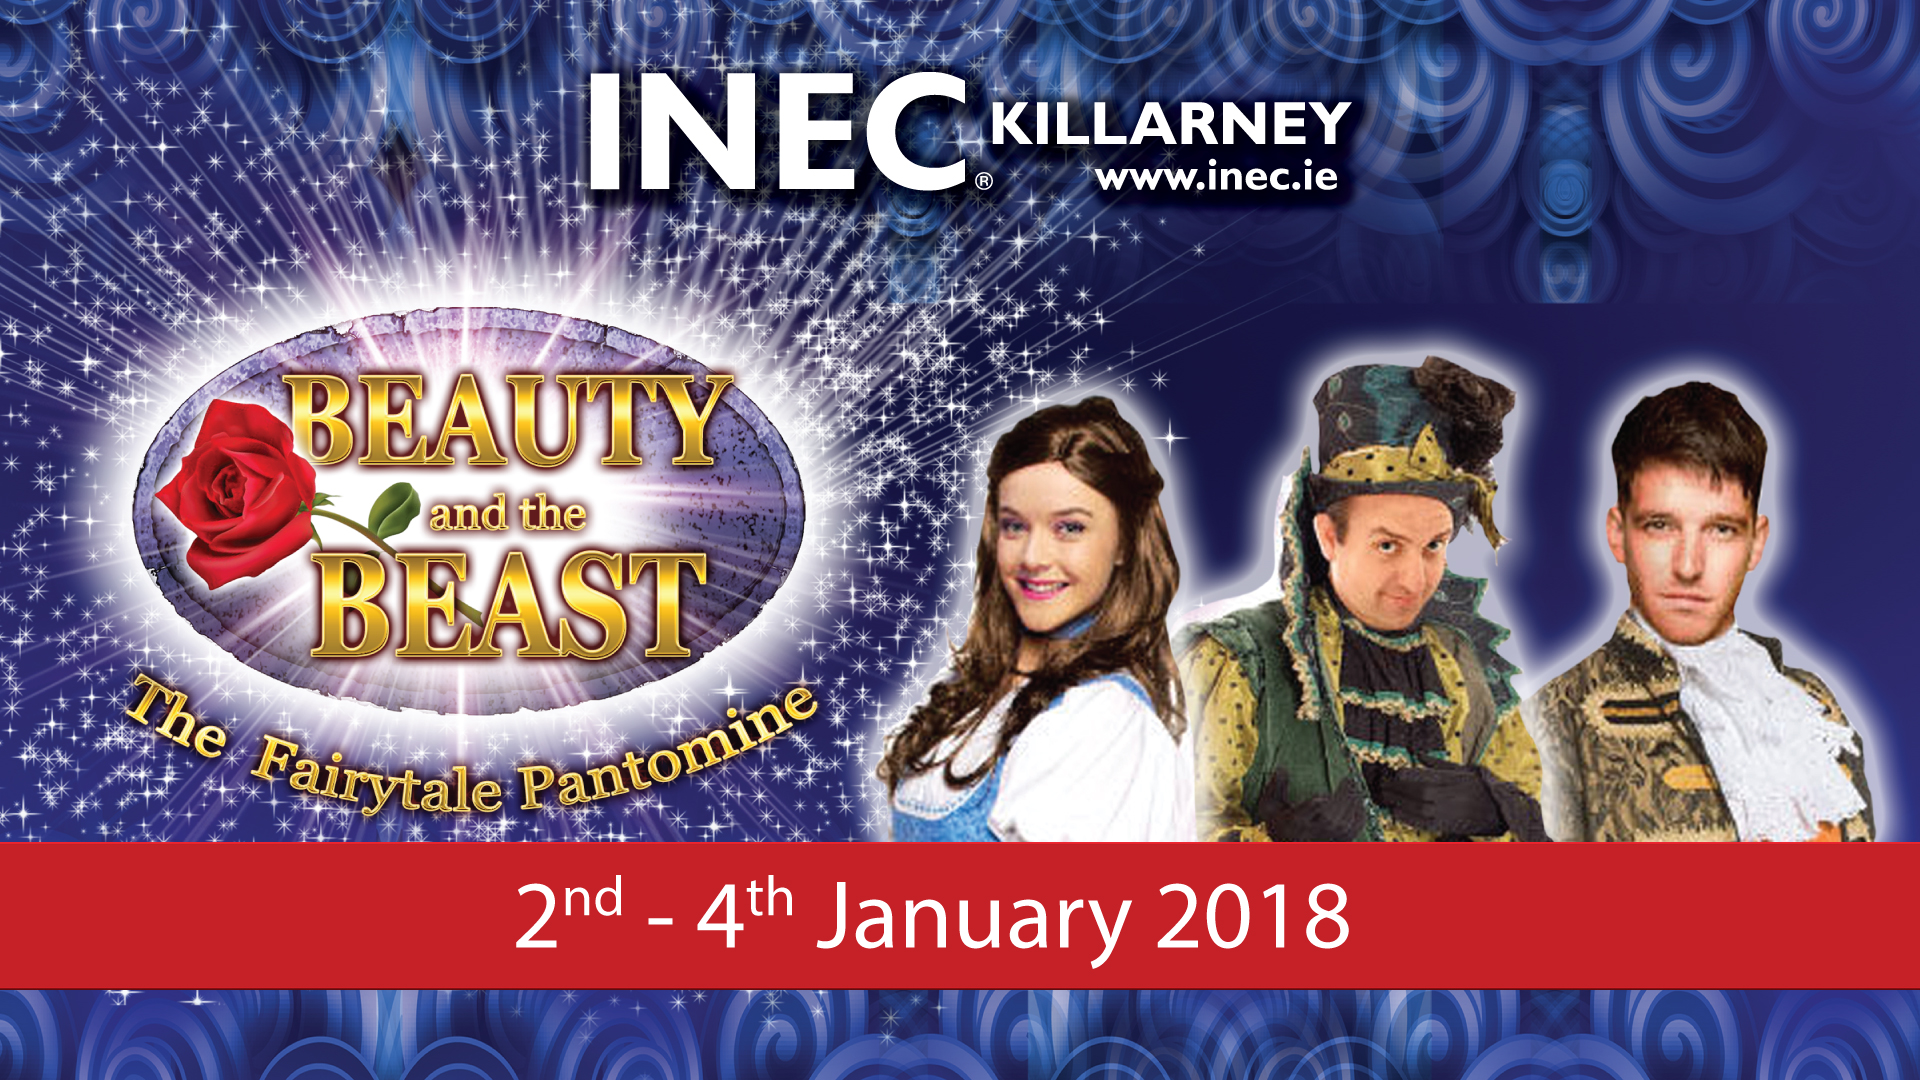 Killarney's first professional pantomime Beauty and the Beast comes to the INEC Killarney from Jan 2nd - 4th 2017